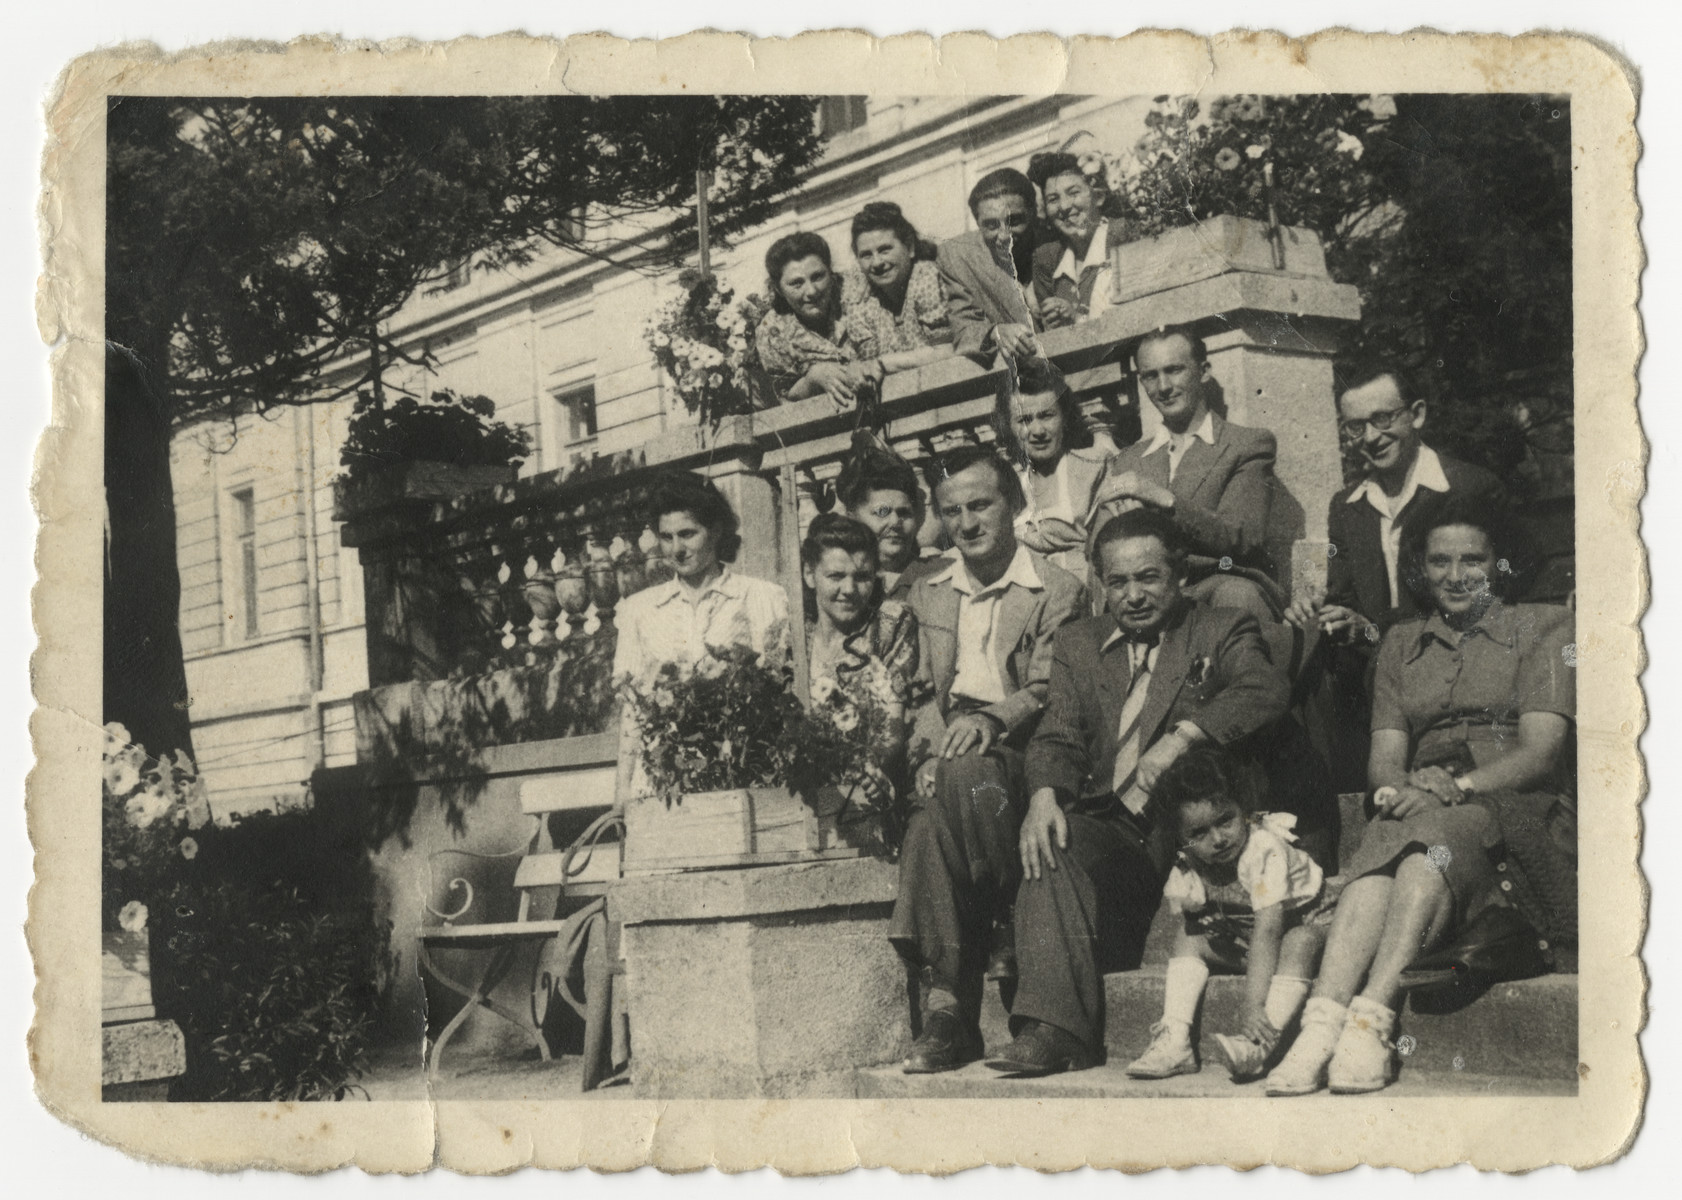 Group portrait of Jewish DPs recovering in a sanatorium in Germany.  Malka Zinger is seated on the lower right with her daughter Ellen.